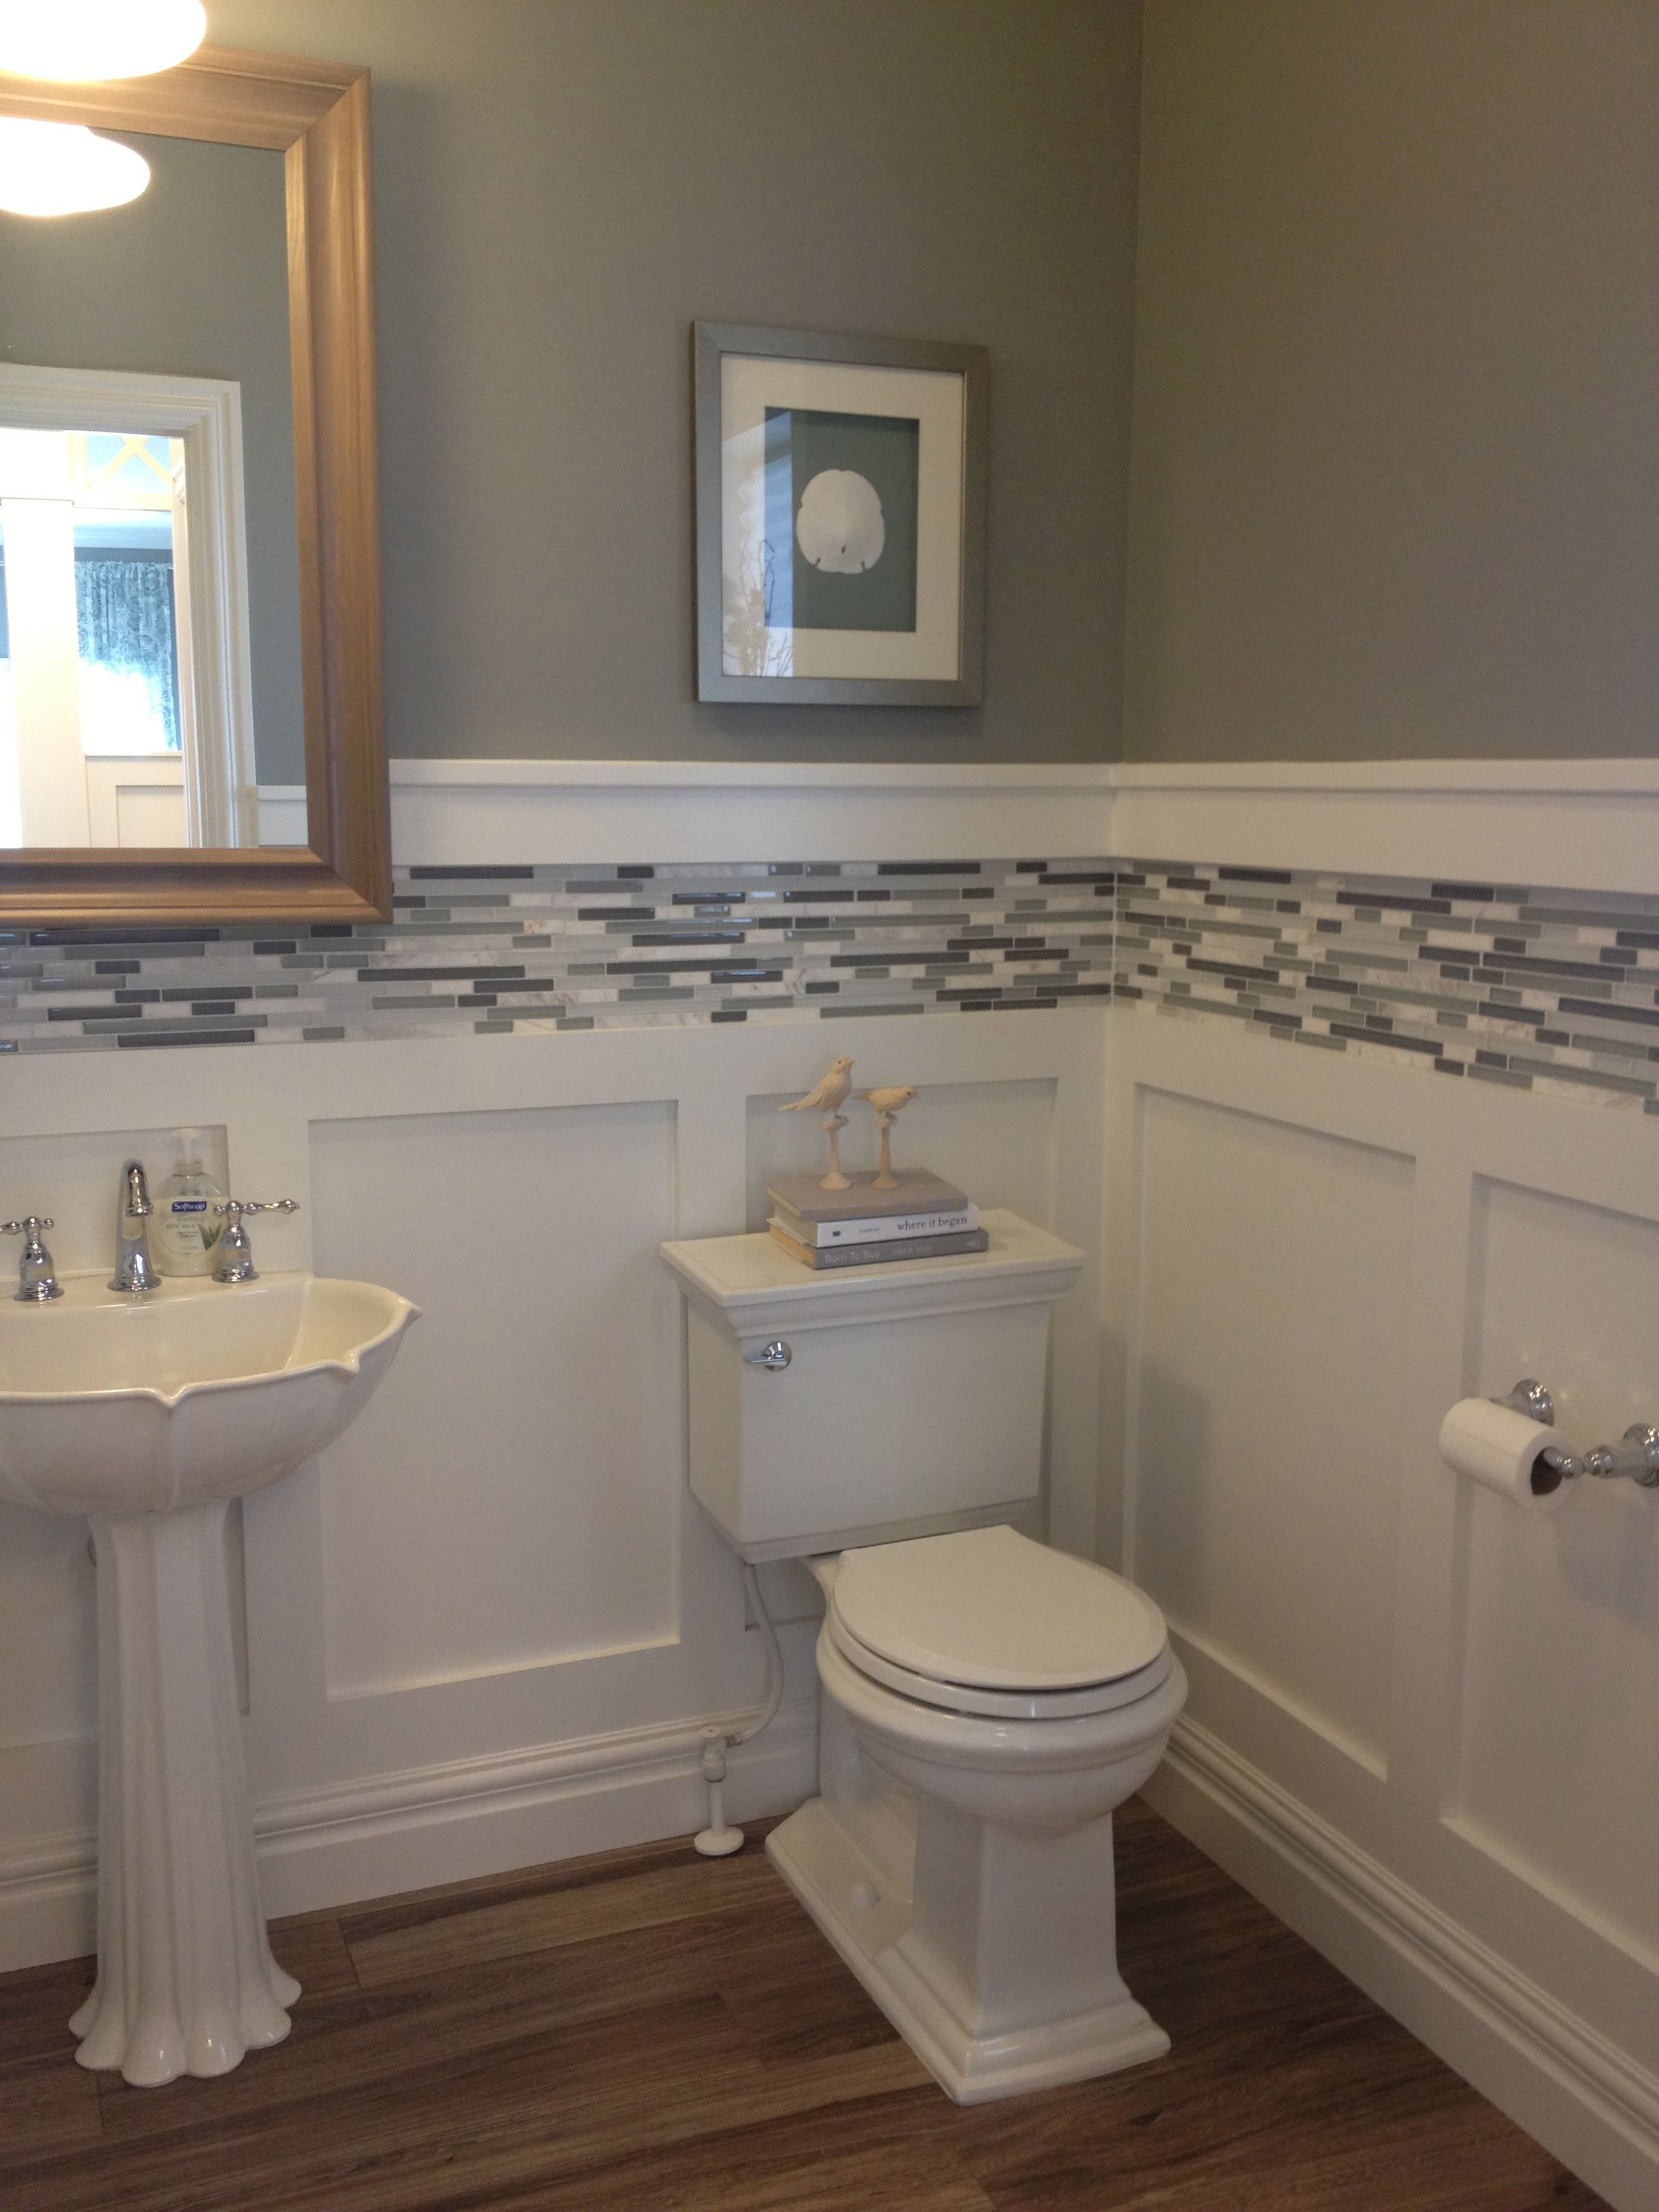 Pictures Of Chair Rails In Bathrooms Fishing Bass Pro Bathroom Choices Pinterest Bald Hairstyles